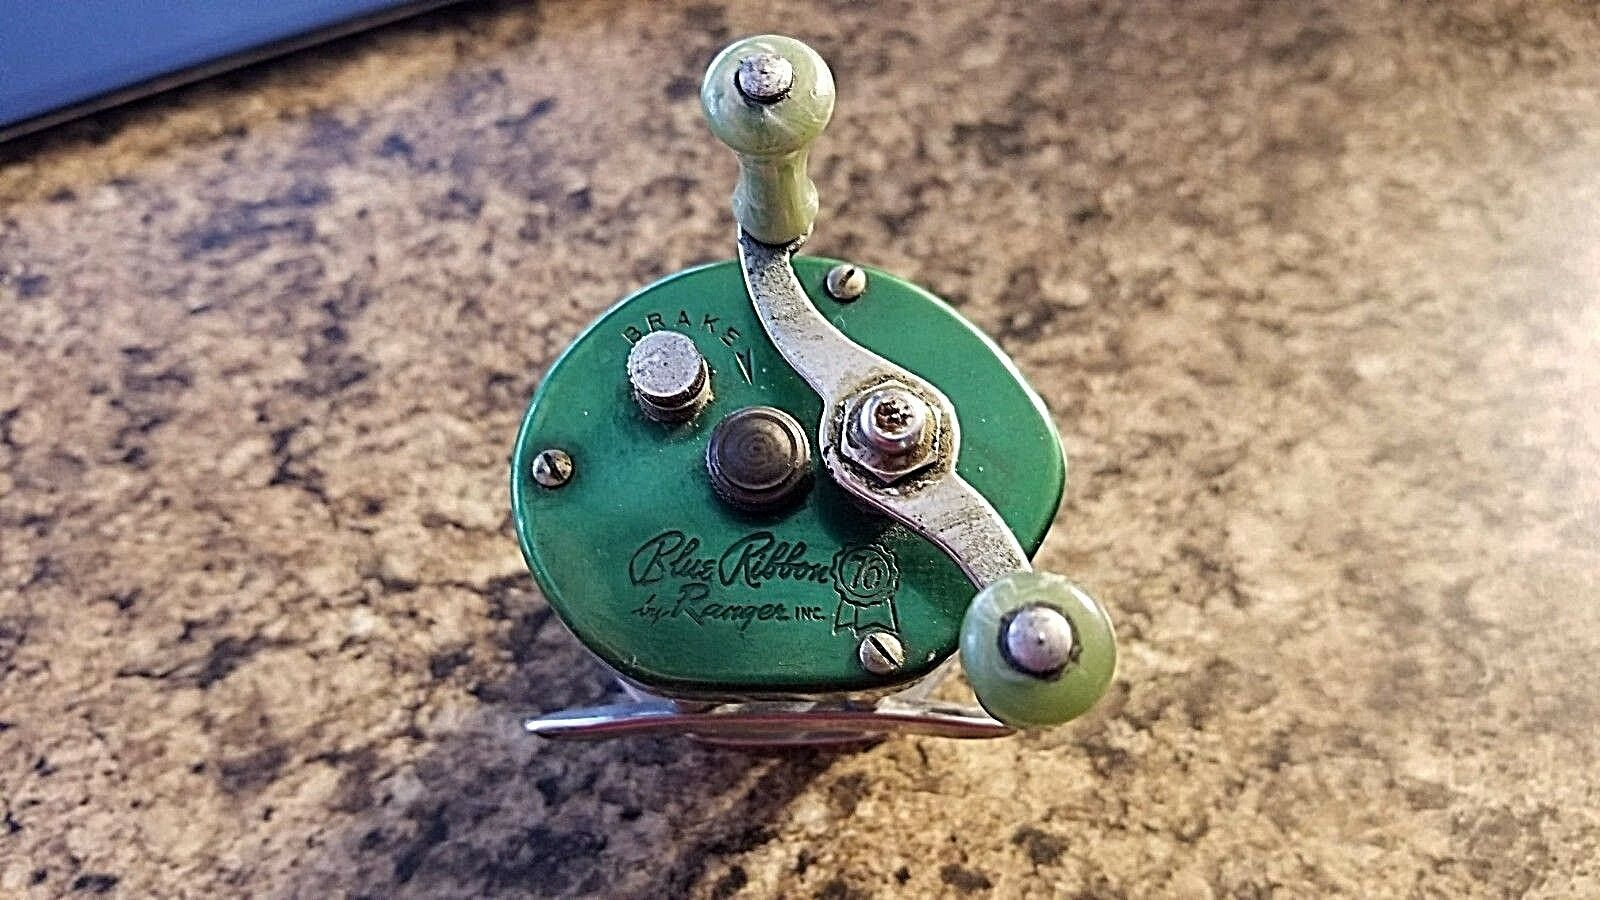 Vintage  bluee Ribbon 76 by Ranger Fishing Reel  big discount prices